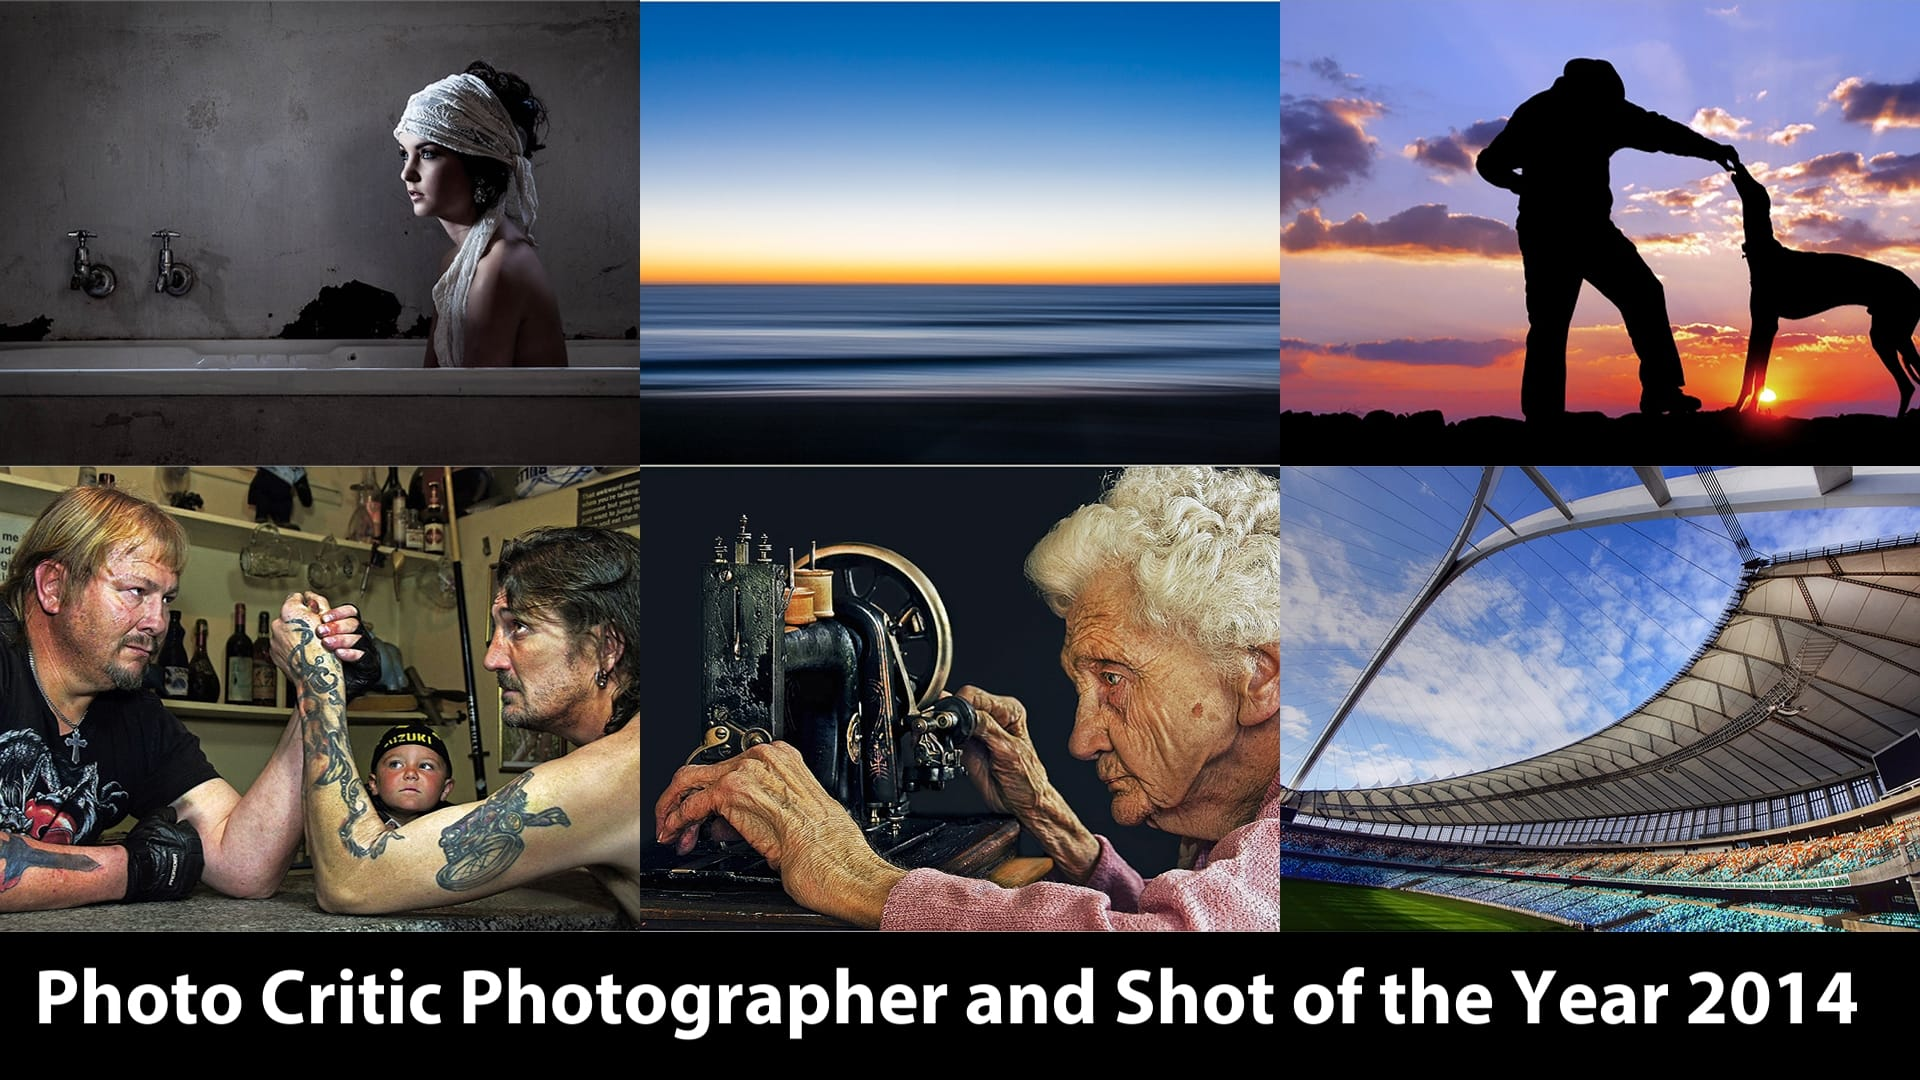 Photo Critic Photographer and Shot of the Year 2014